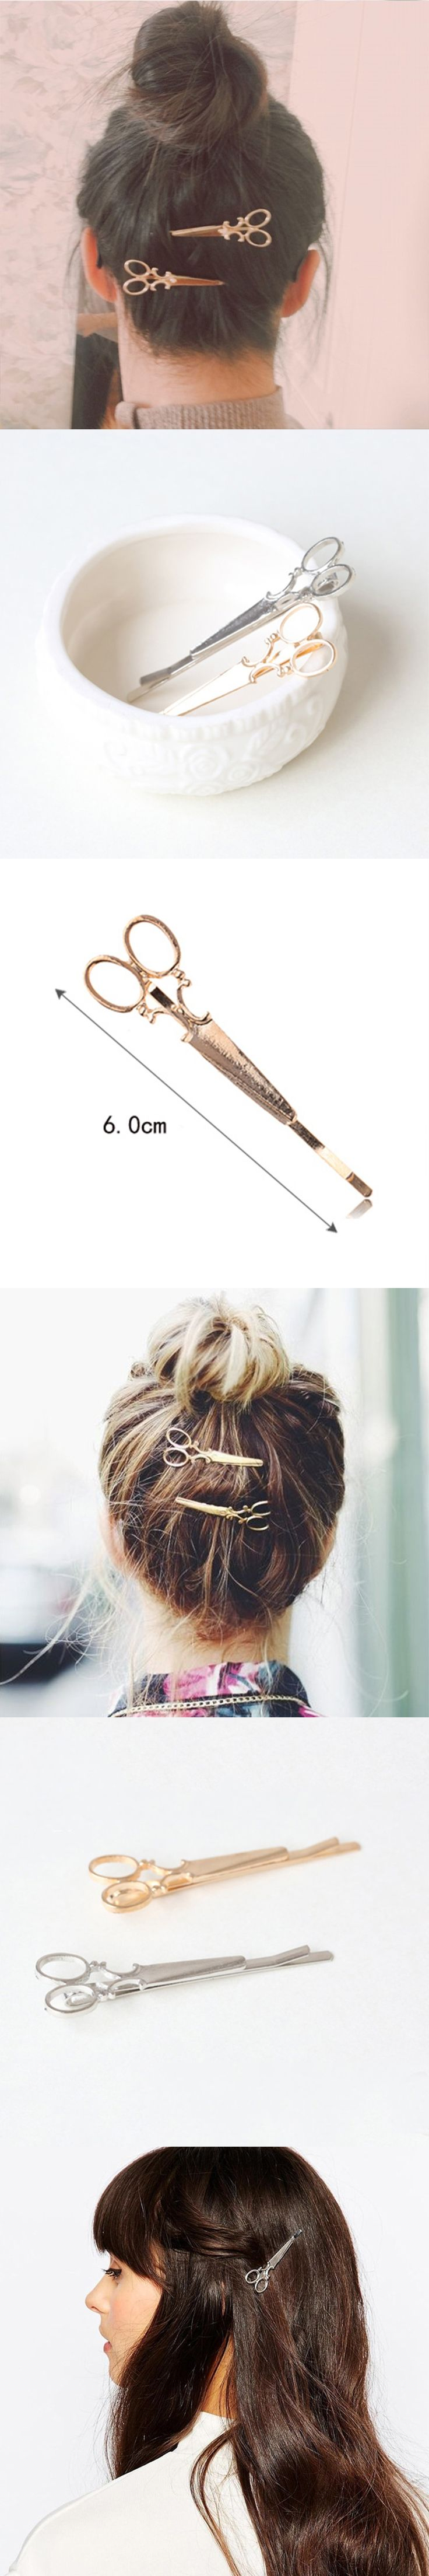 New Fashion Scissor Shaped Barrettes Golden Silver Hairpins Shiny Elegant Hair Clips For Women Girls Hair Accessories Wholesales